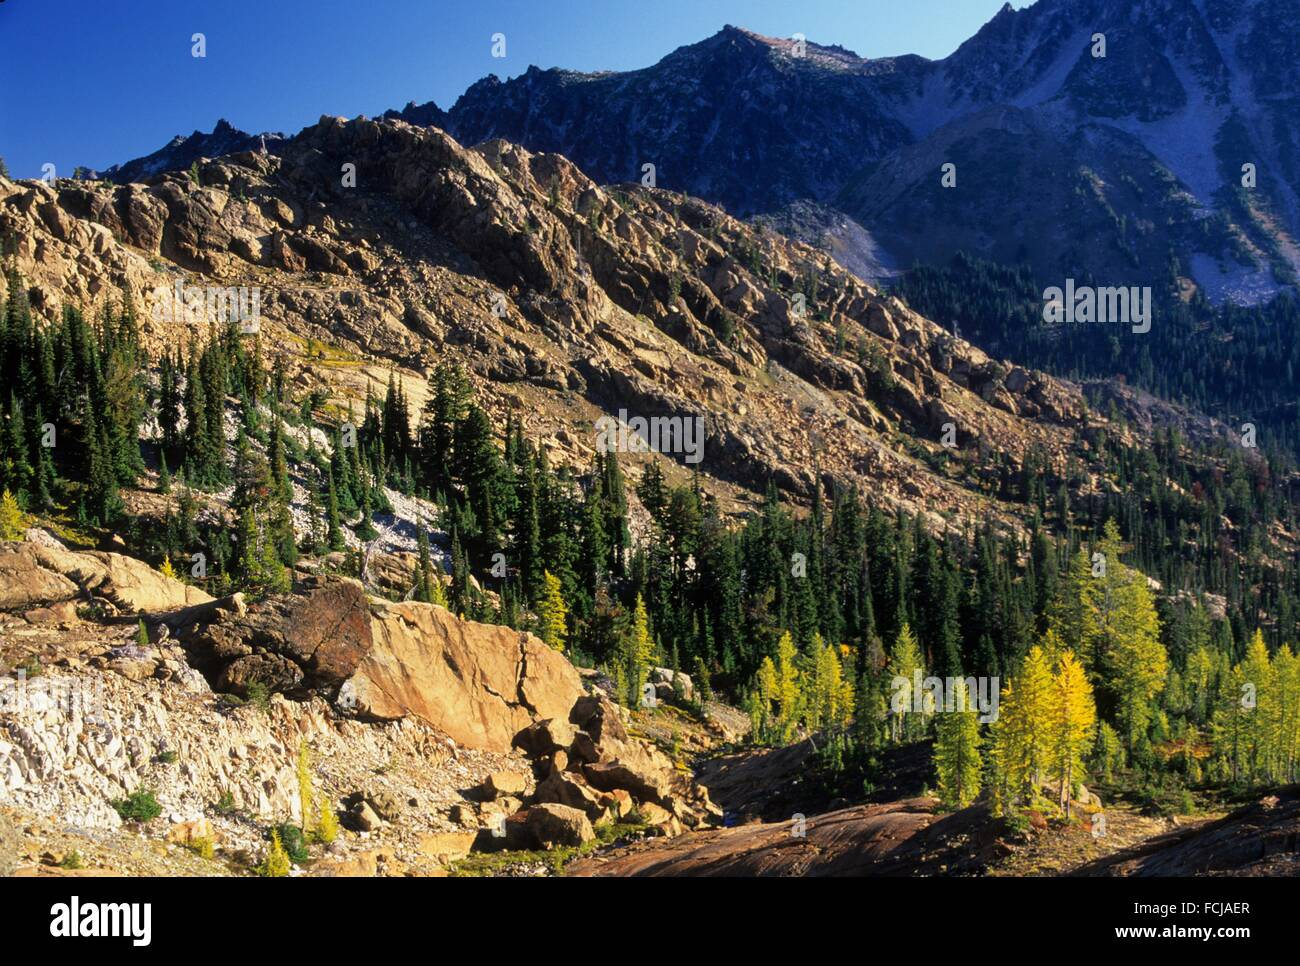 Ingalls Creek headwaters view, Alpine Lakes Wilderness, Wenatchee National Forest, Washington. - Stock Image